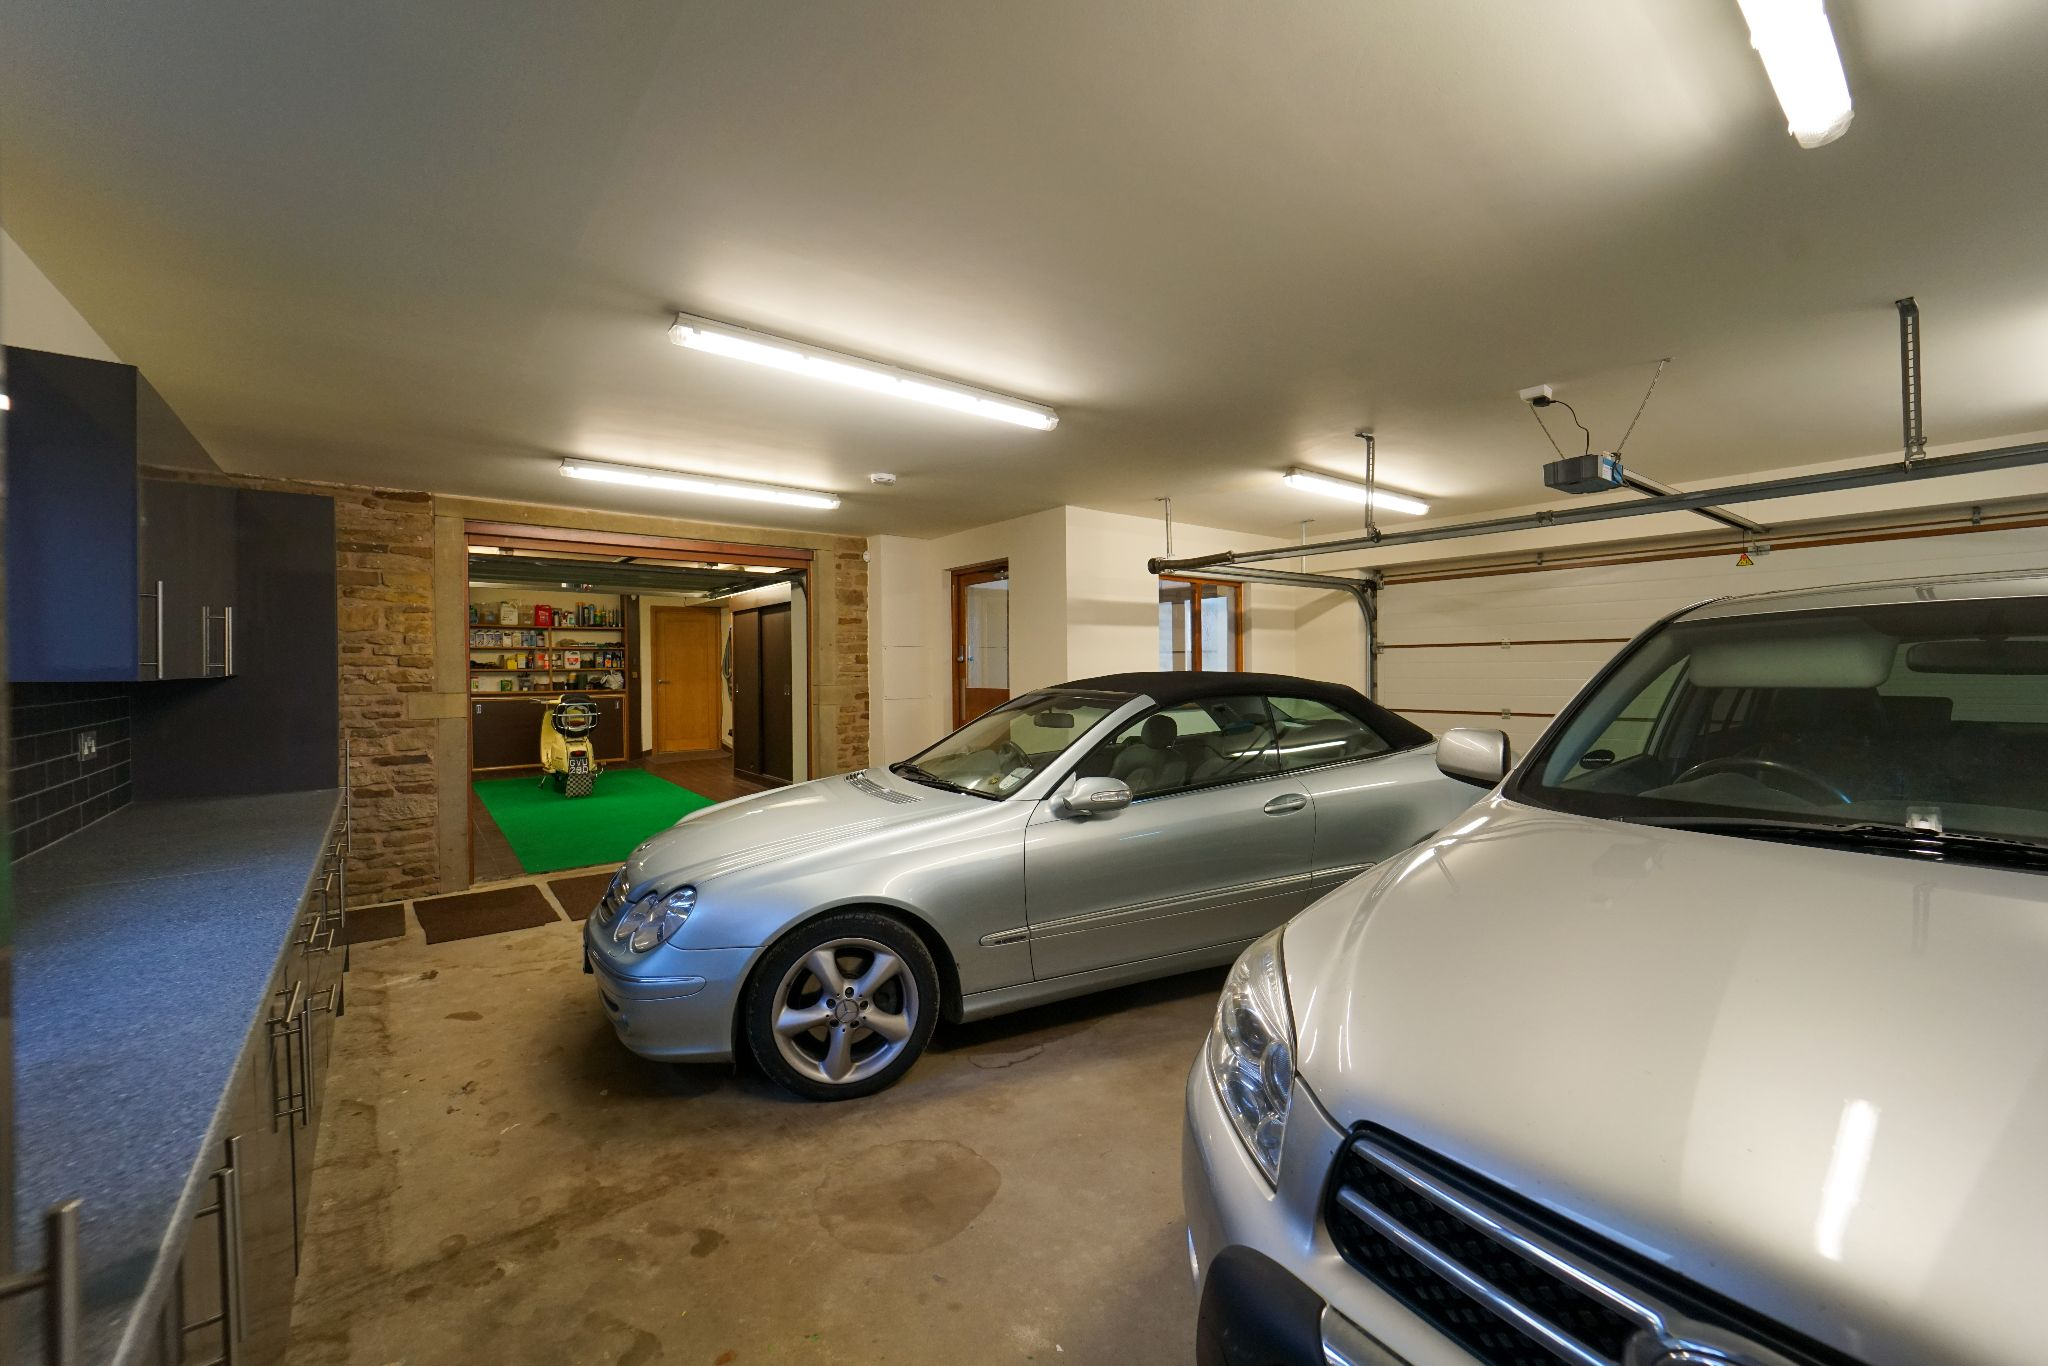 5 bedroom barn conversion house For Sale in Bolton - Photograph 80